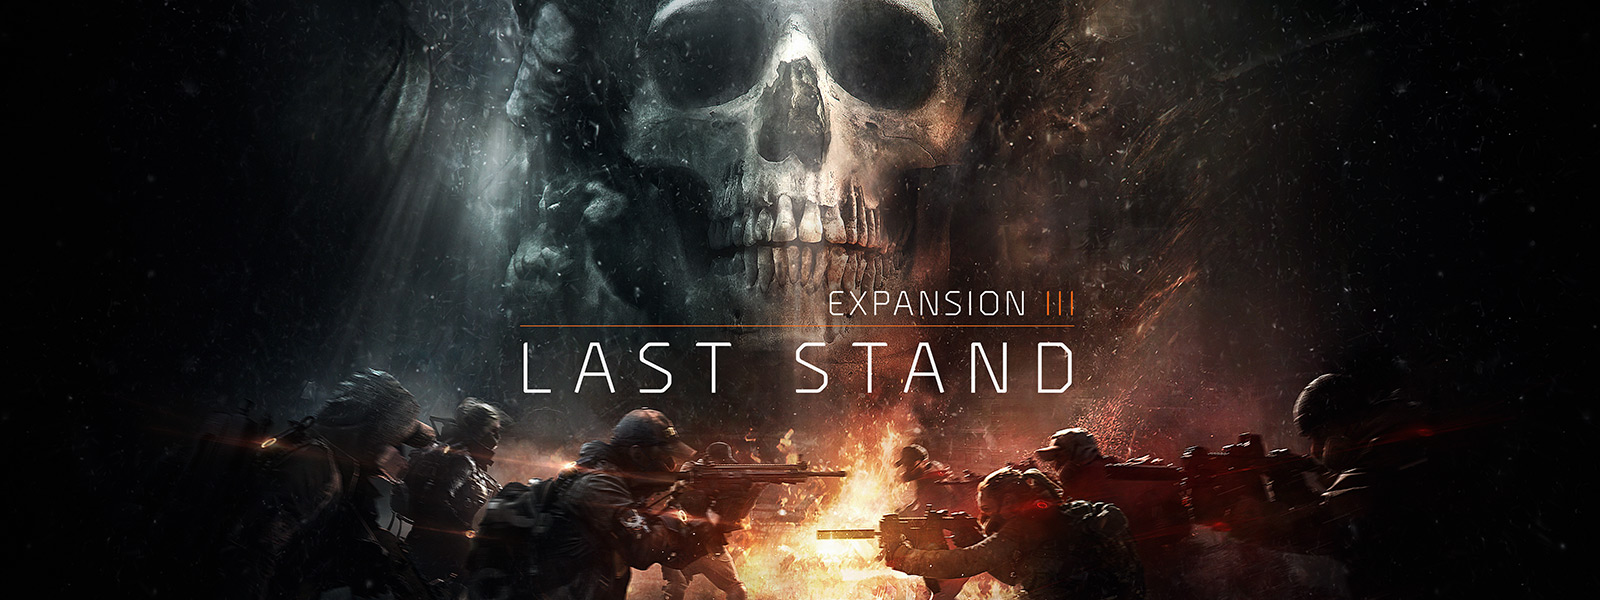 Expansion III: Last Stand, agents face each other in the Dark Zone